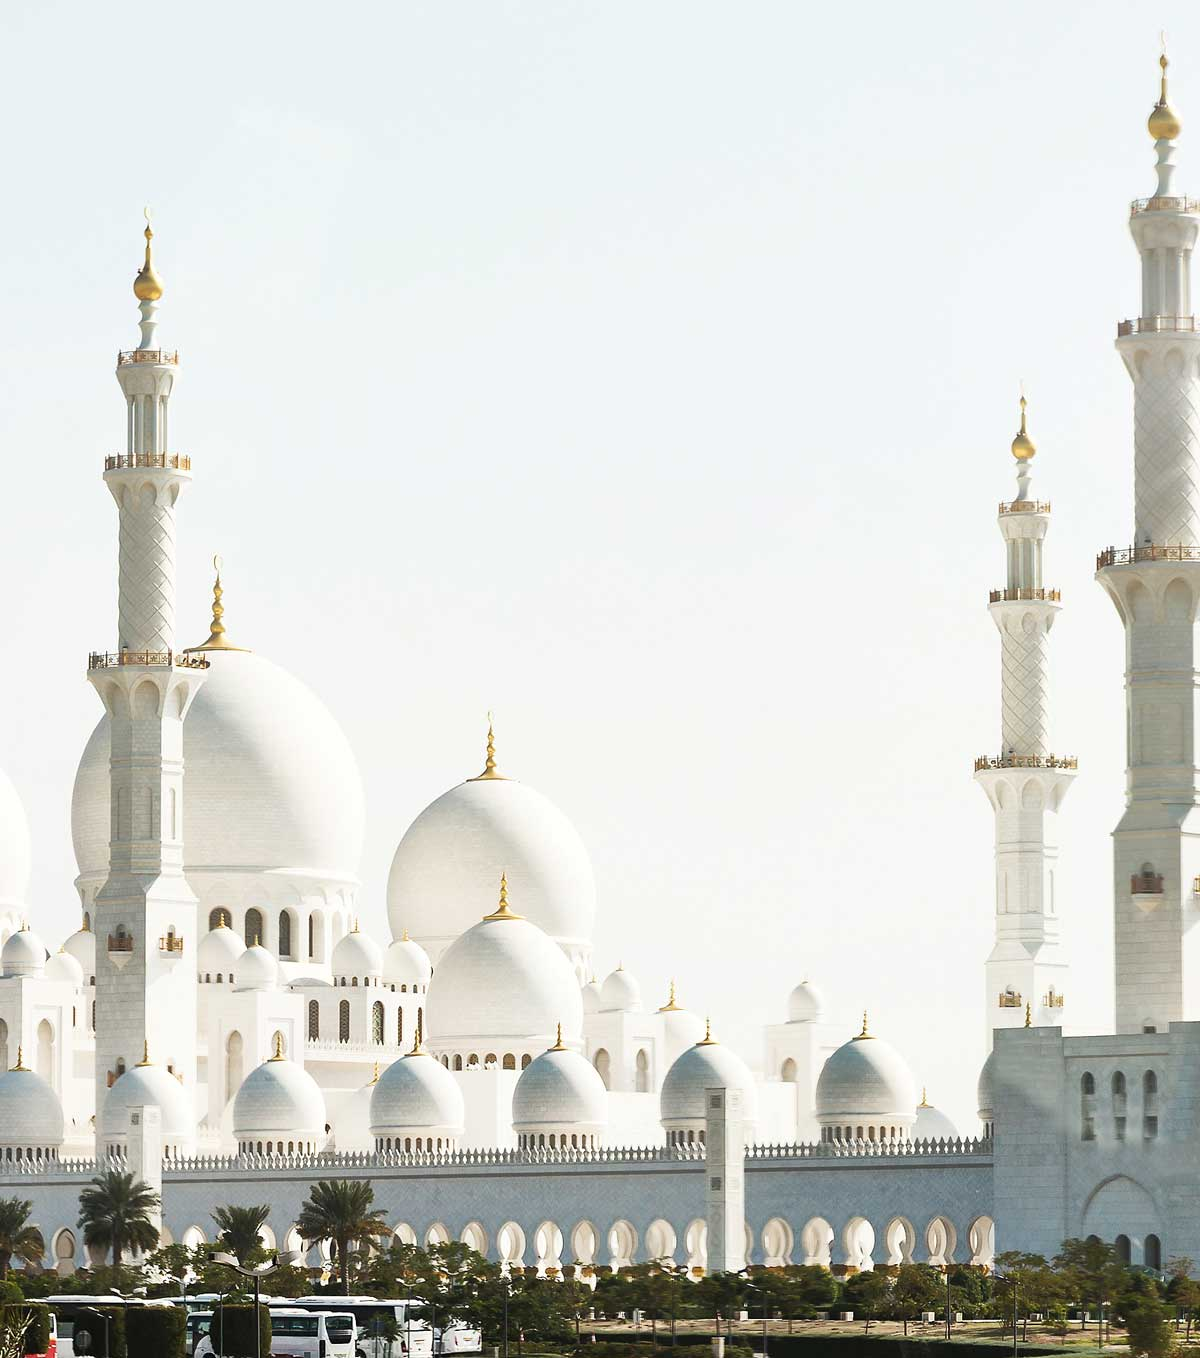 Abu Dhabi mosque, background for explore CRS's recruitment fair in Abu Dhabi